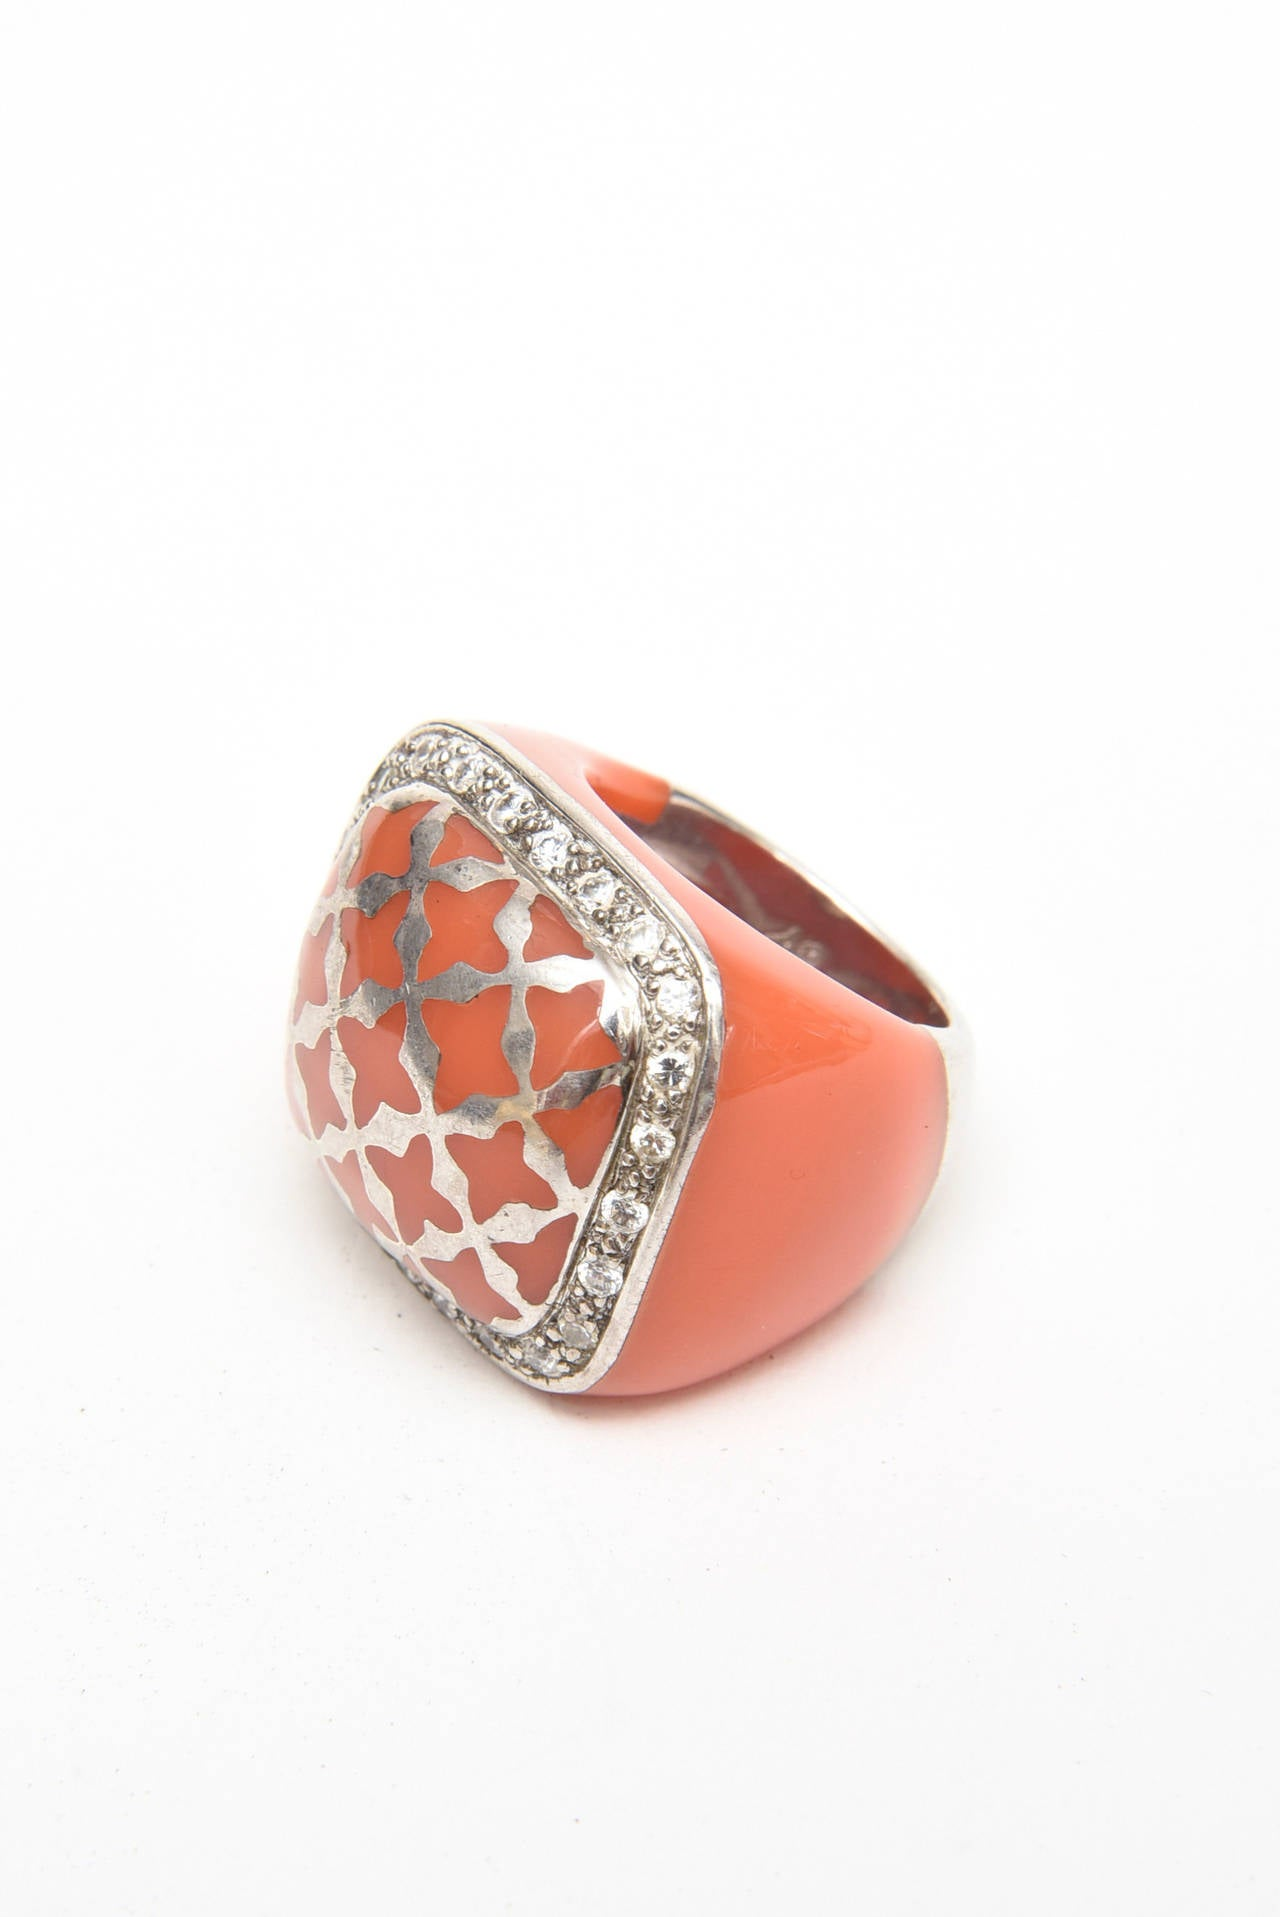 Angelique de Paris Sterling Silver, Rhinestone & Resin Dome Ring For Sale 3